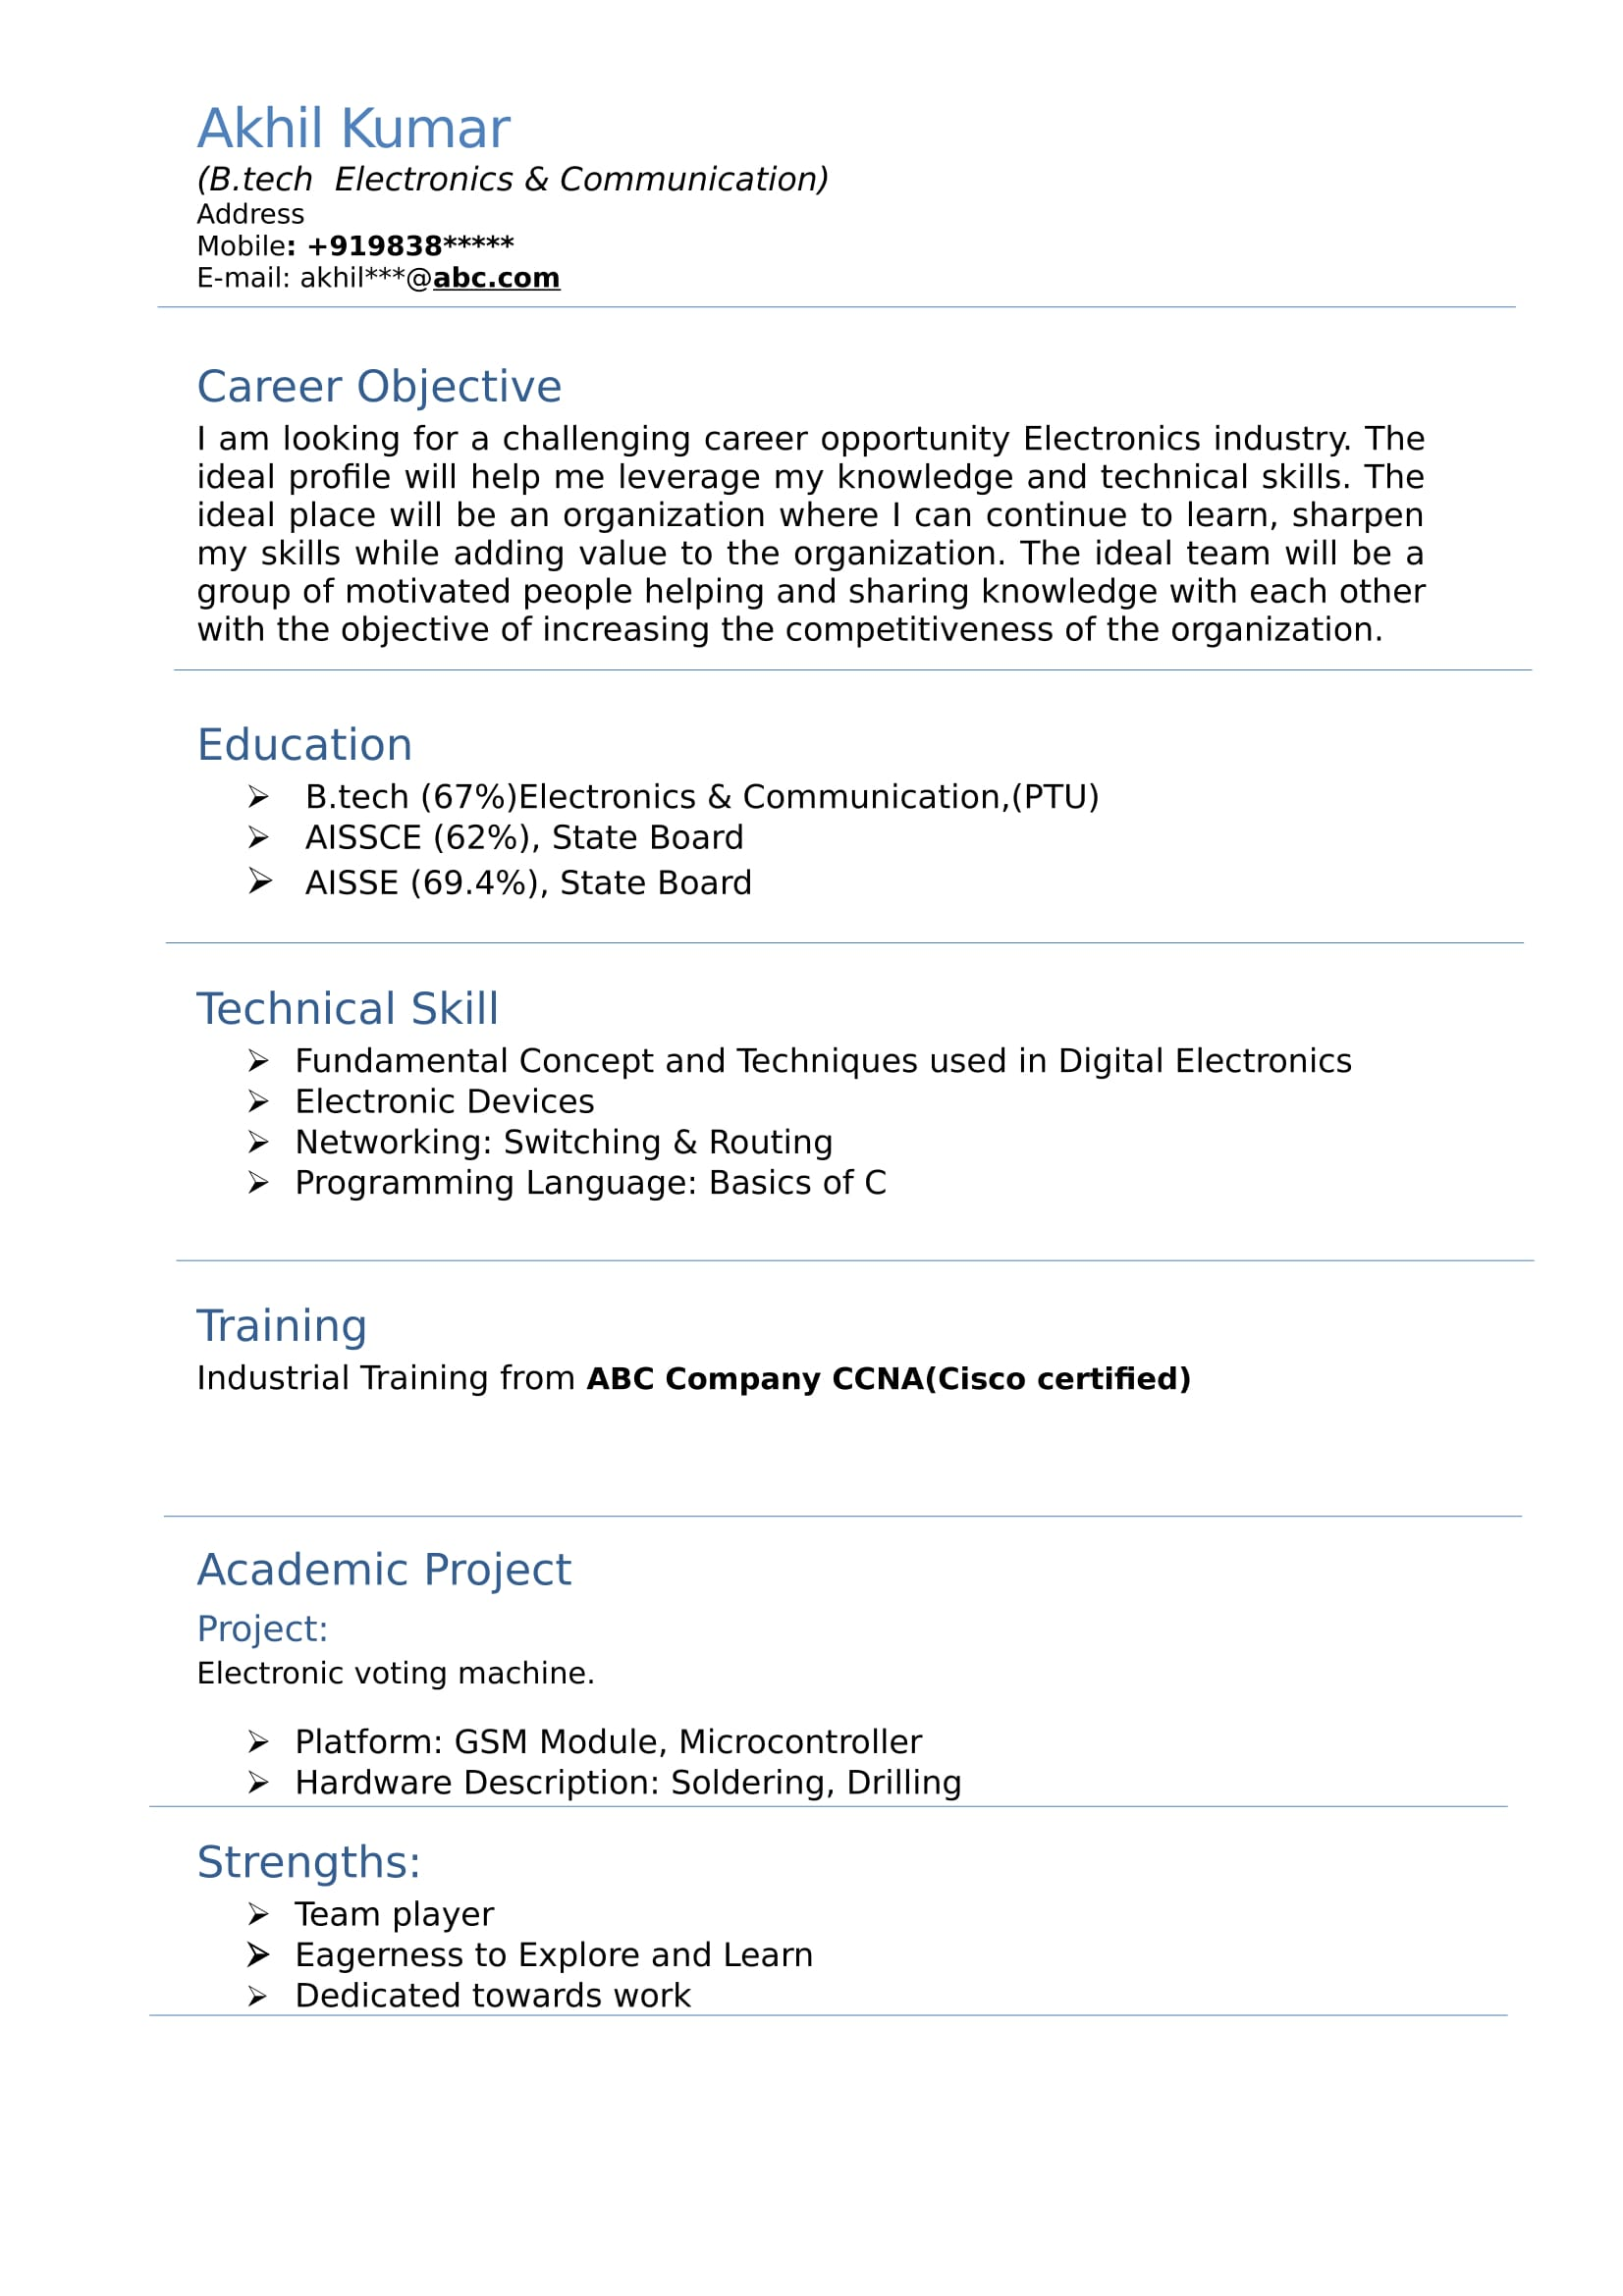 resume templates for electronics and communication